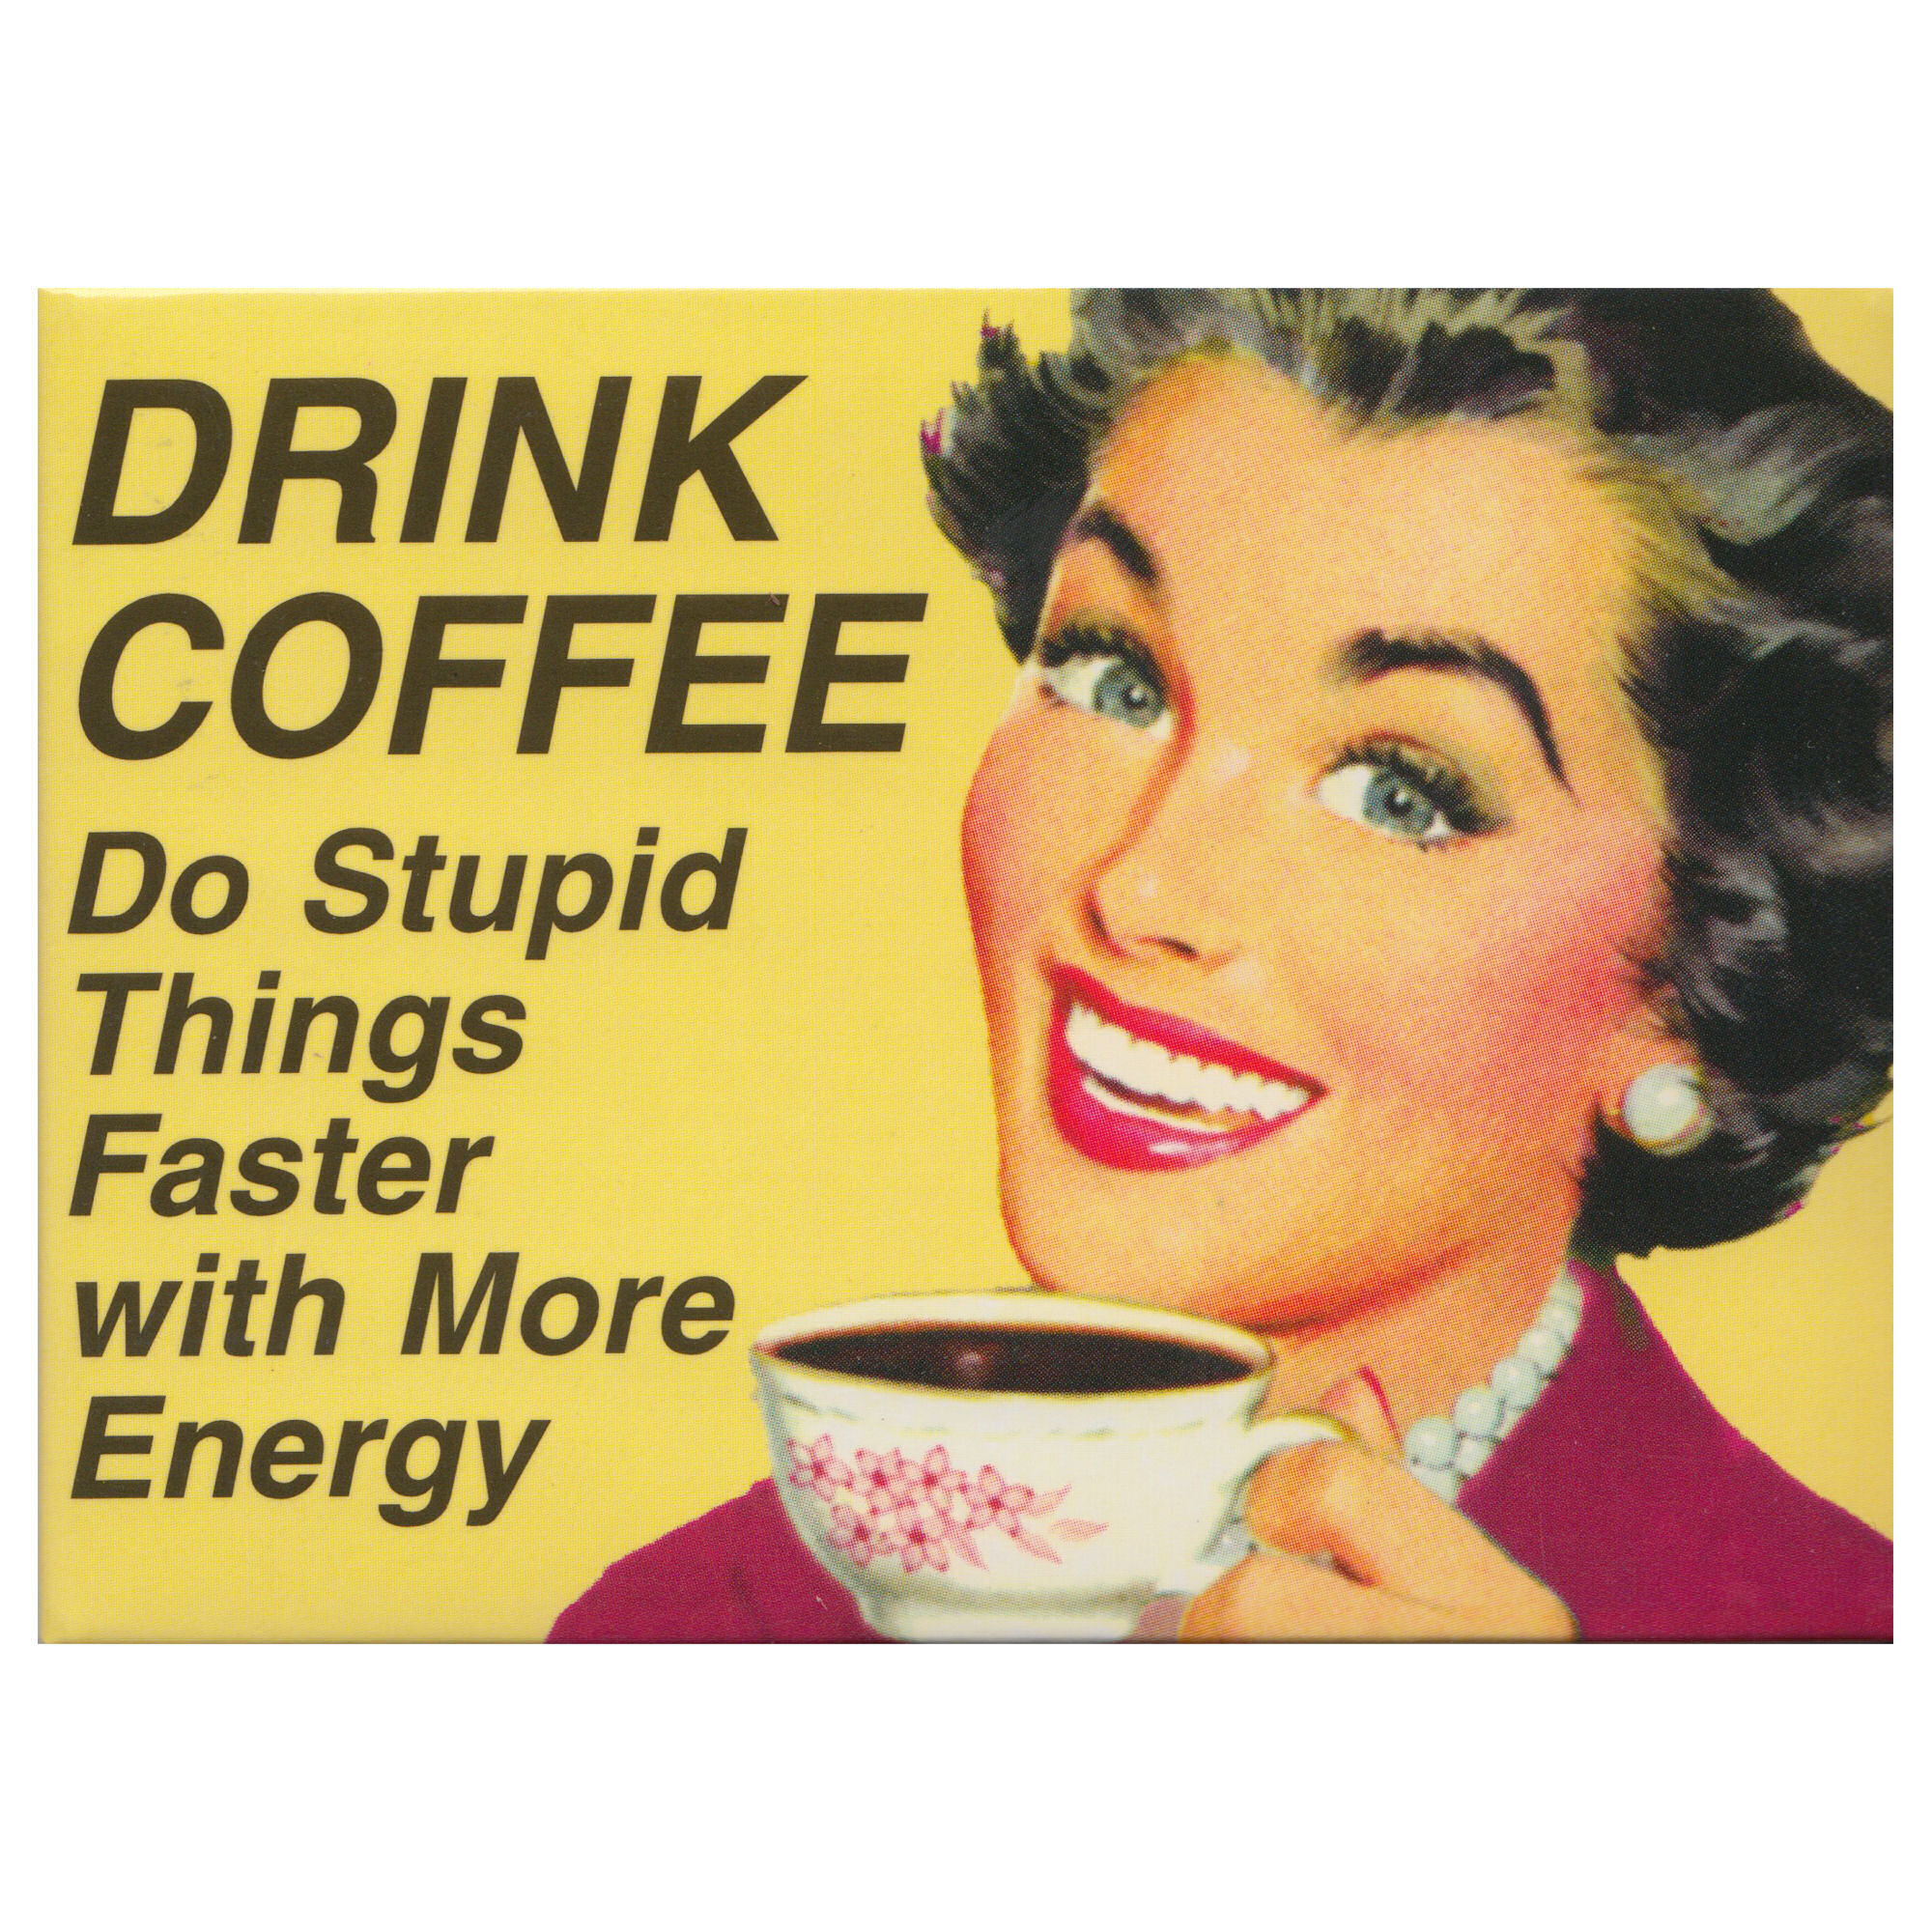 Drink Coffee Do Stupid Things Faster Poster